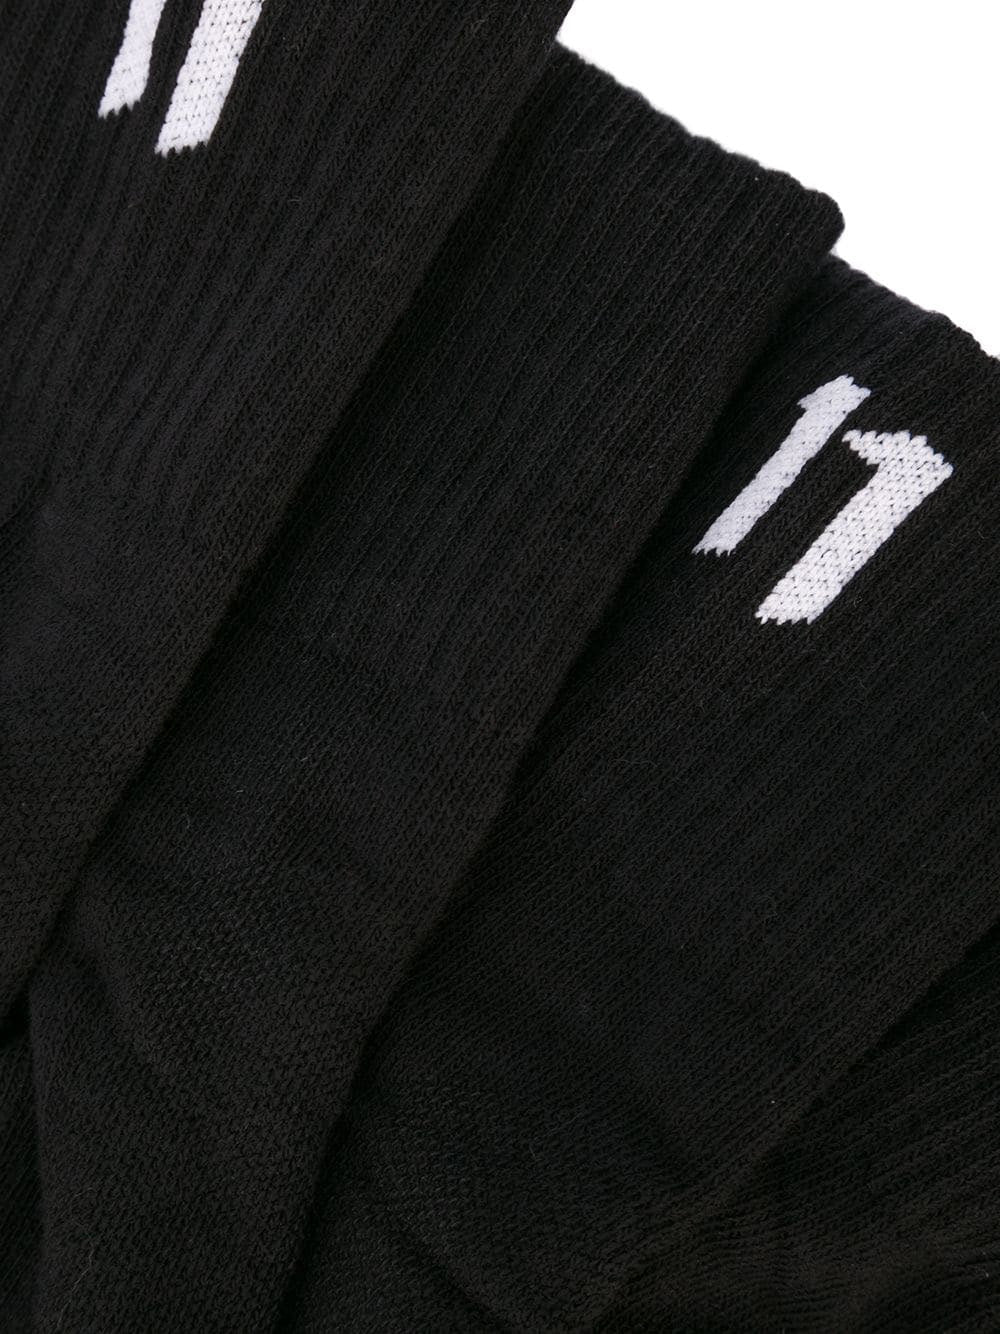 11 LOGO SOCK SET